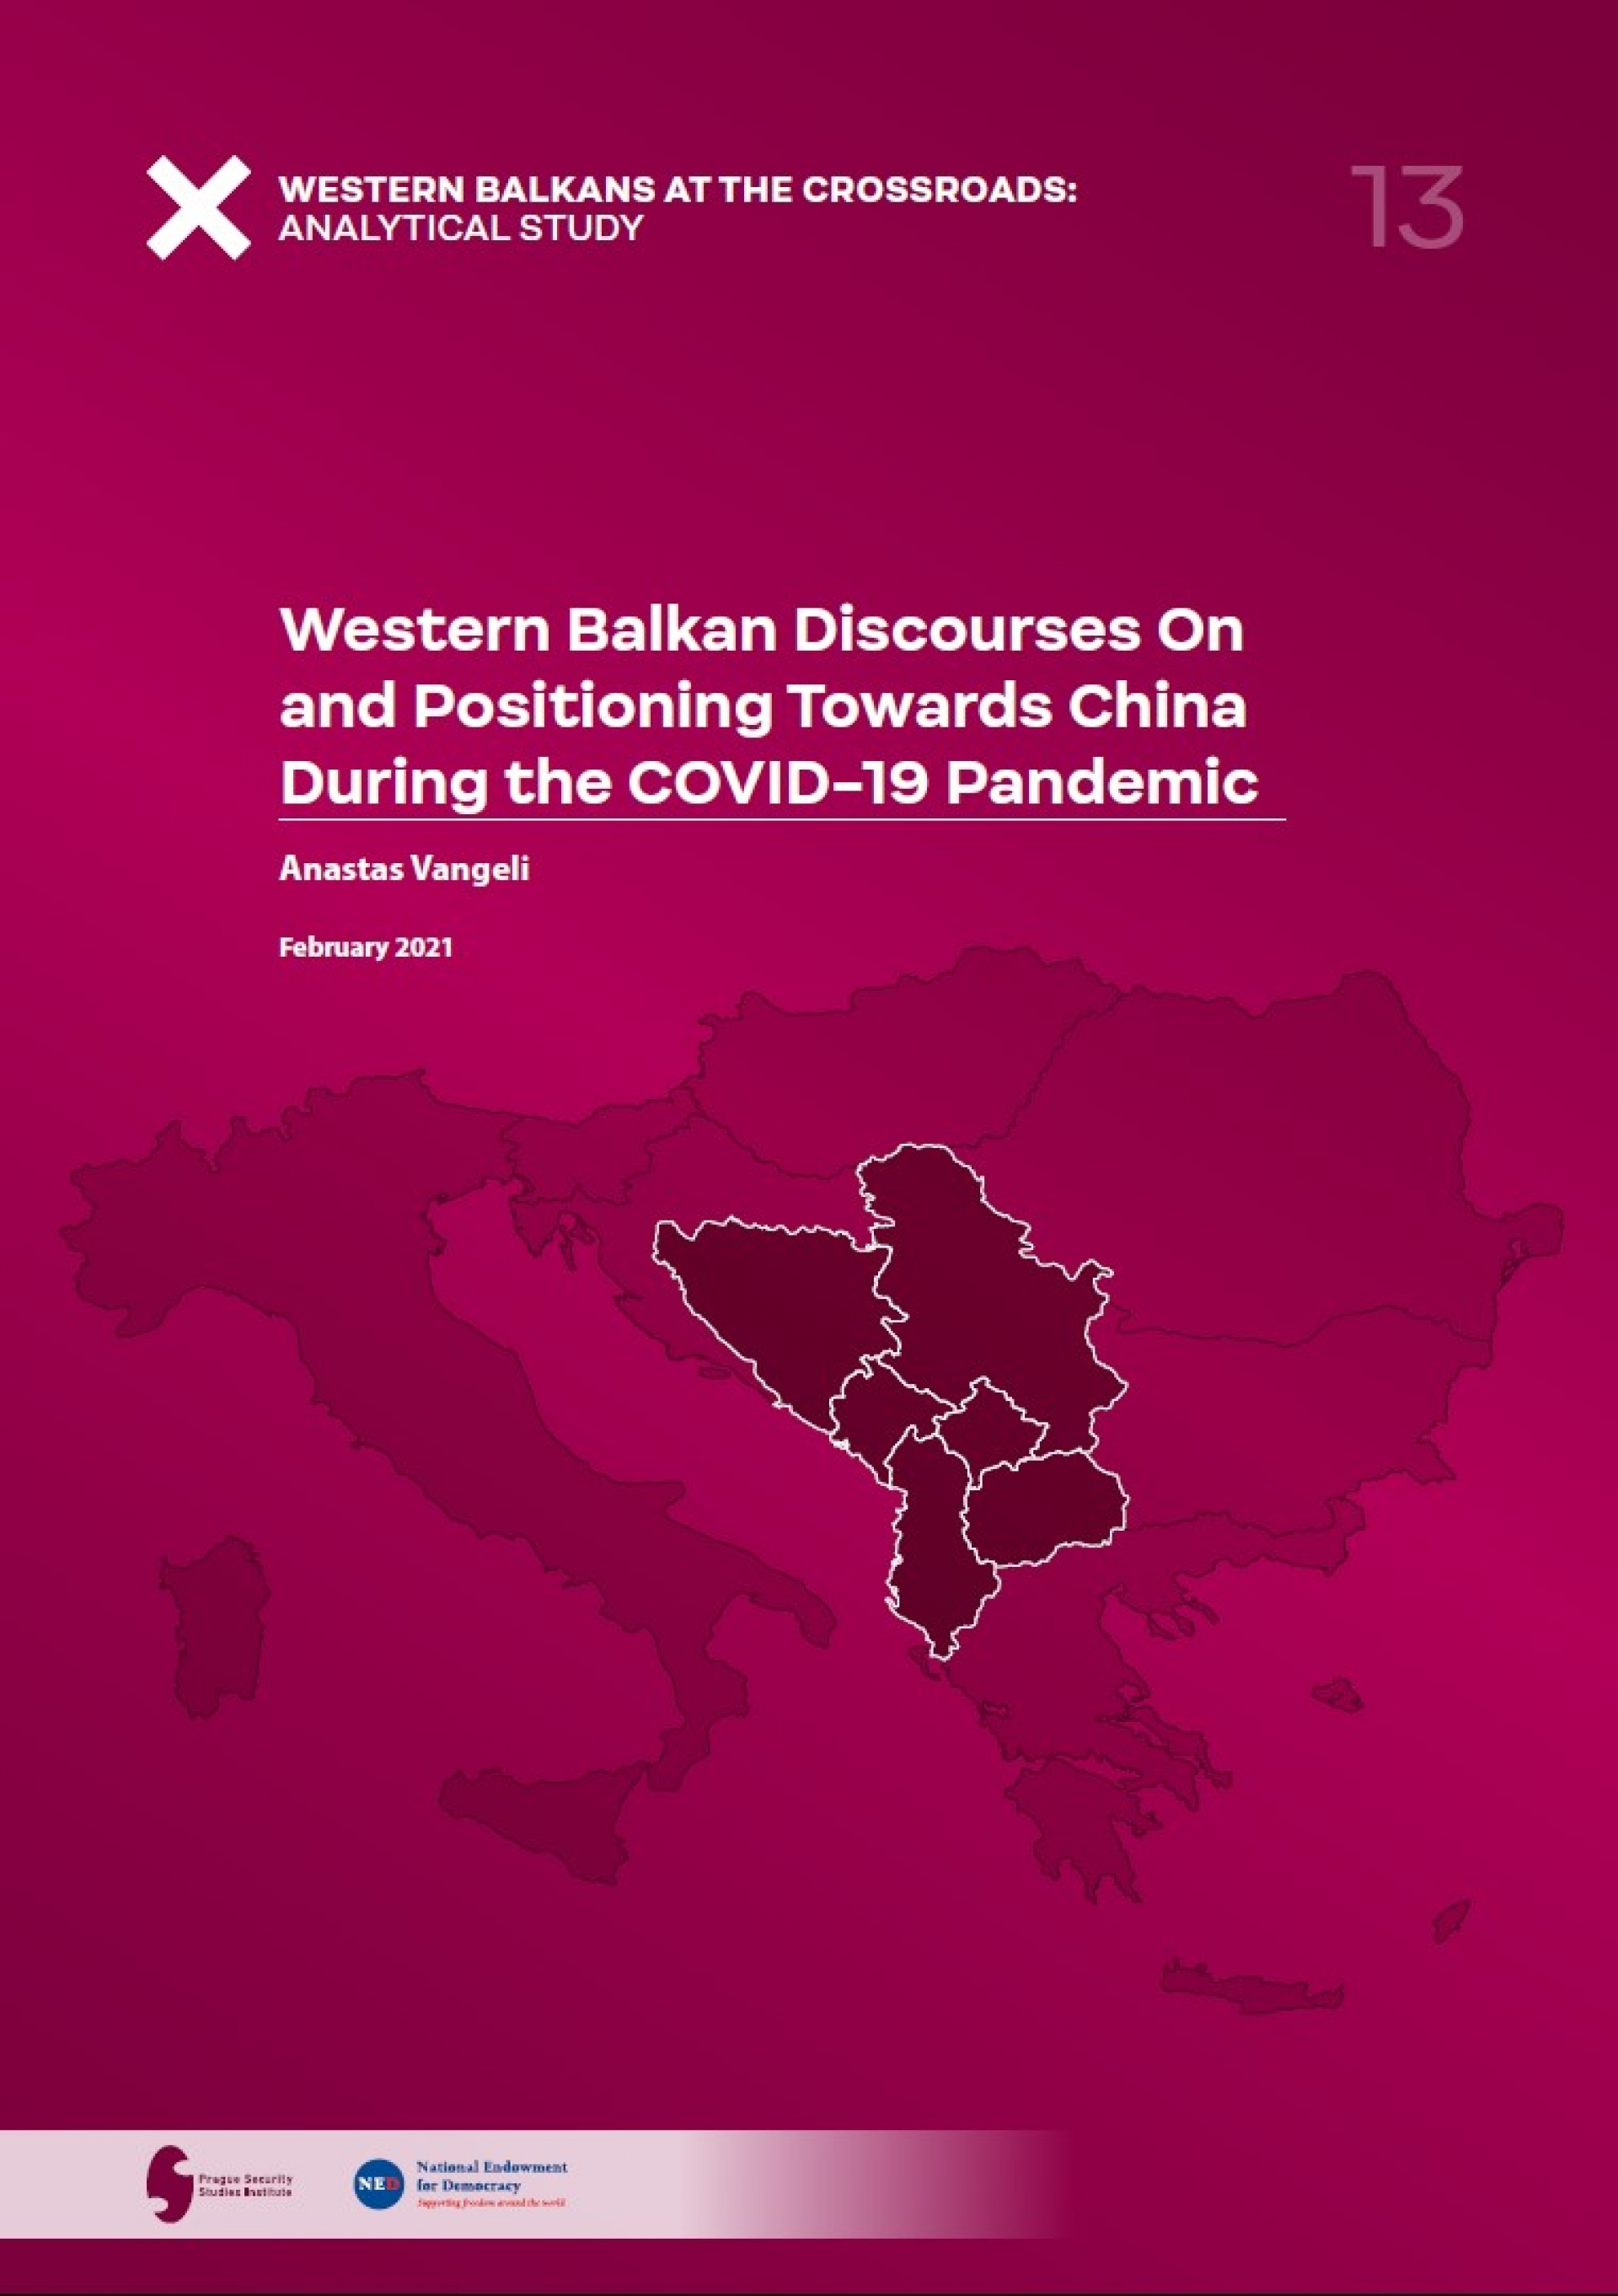 Western Balkan Discourses On and Positioning Towards China During the COVID-19 Pandemic COVERPAGE